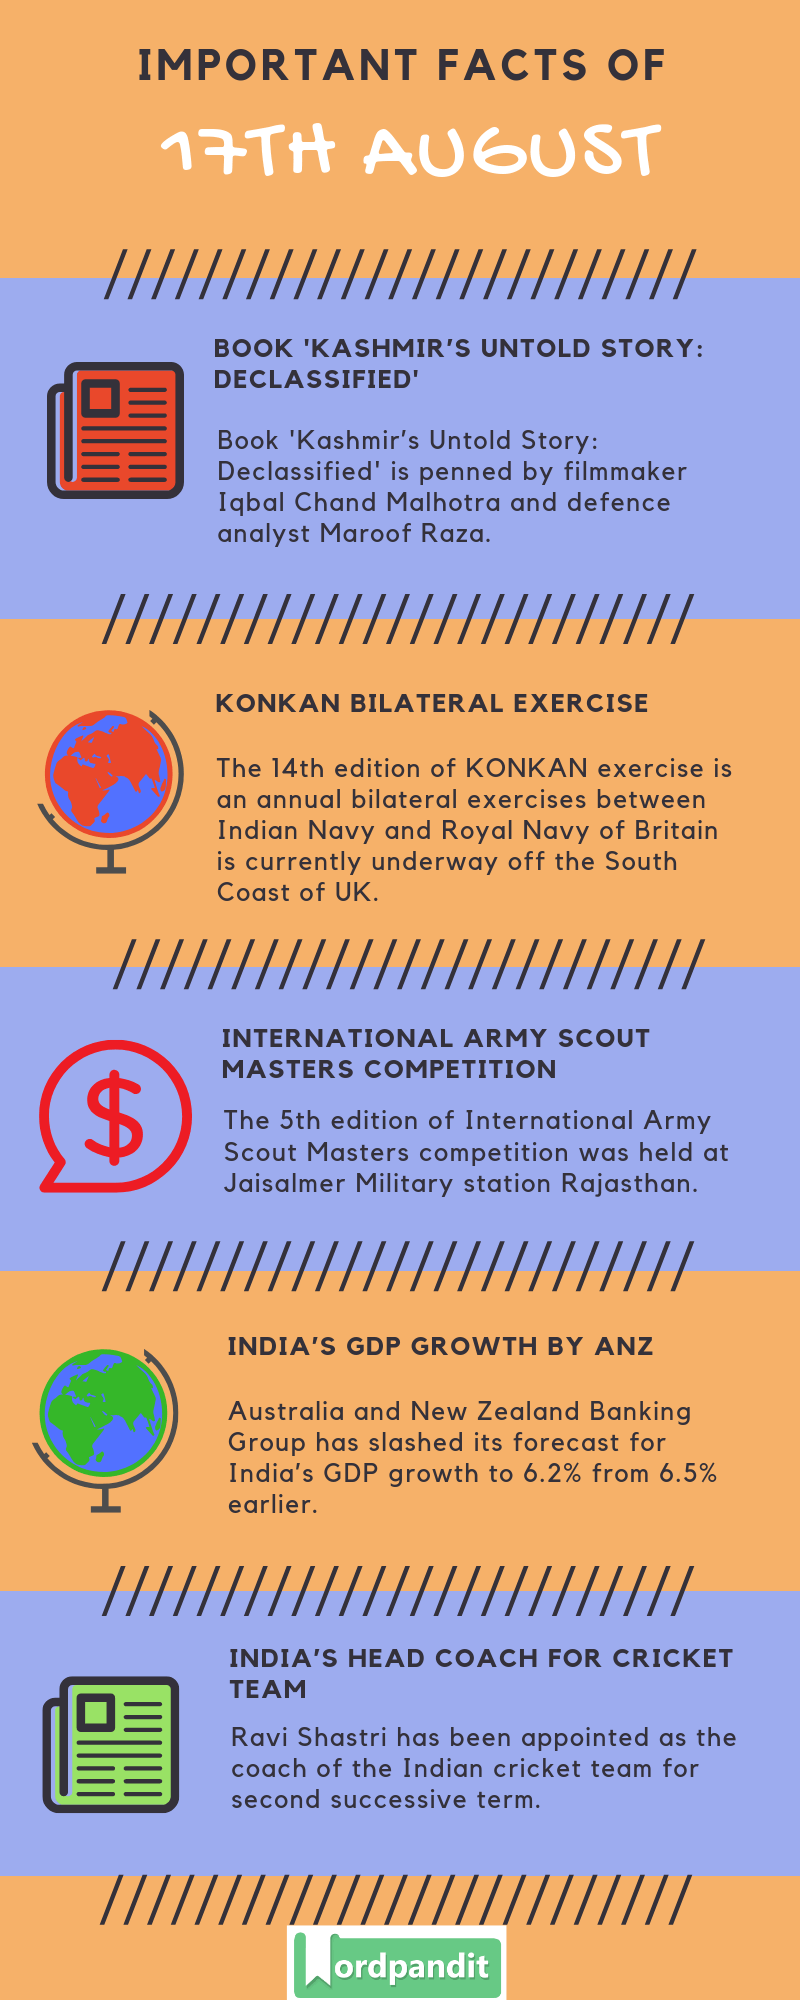 Daily Current Affairs 17 August 2019 Current Affairs Quiz 17 August 2019 Current Affairs Infographic